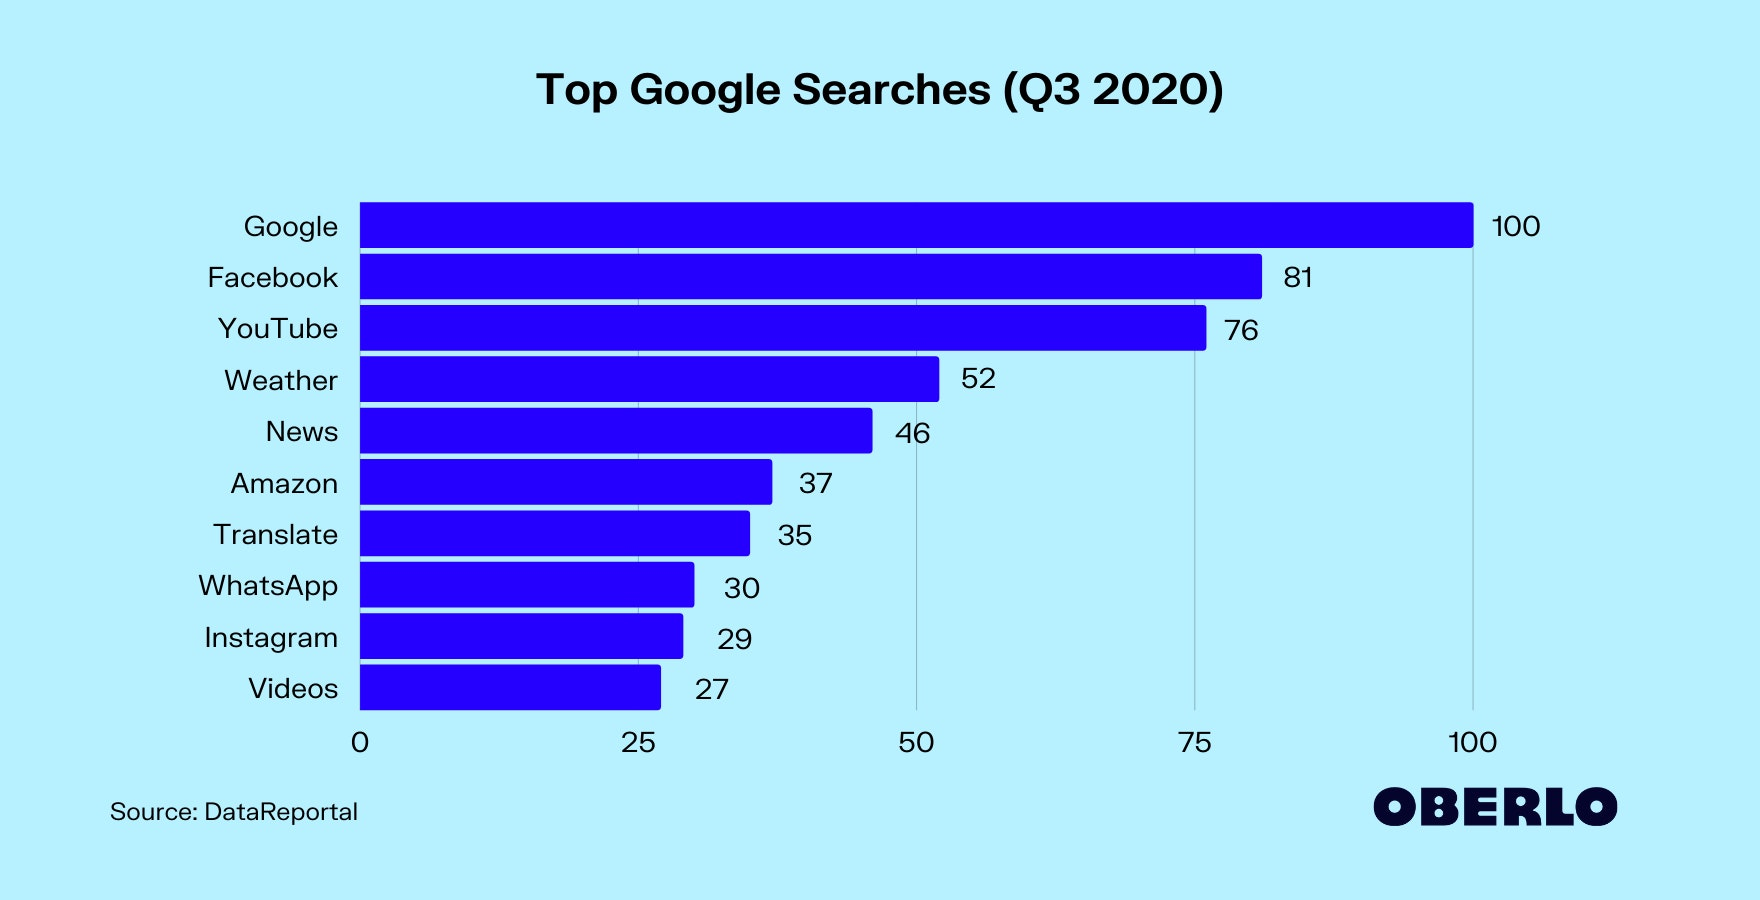 Top Google Searches (Q3 2020)